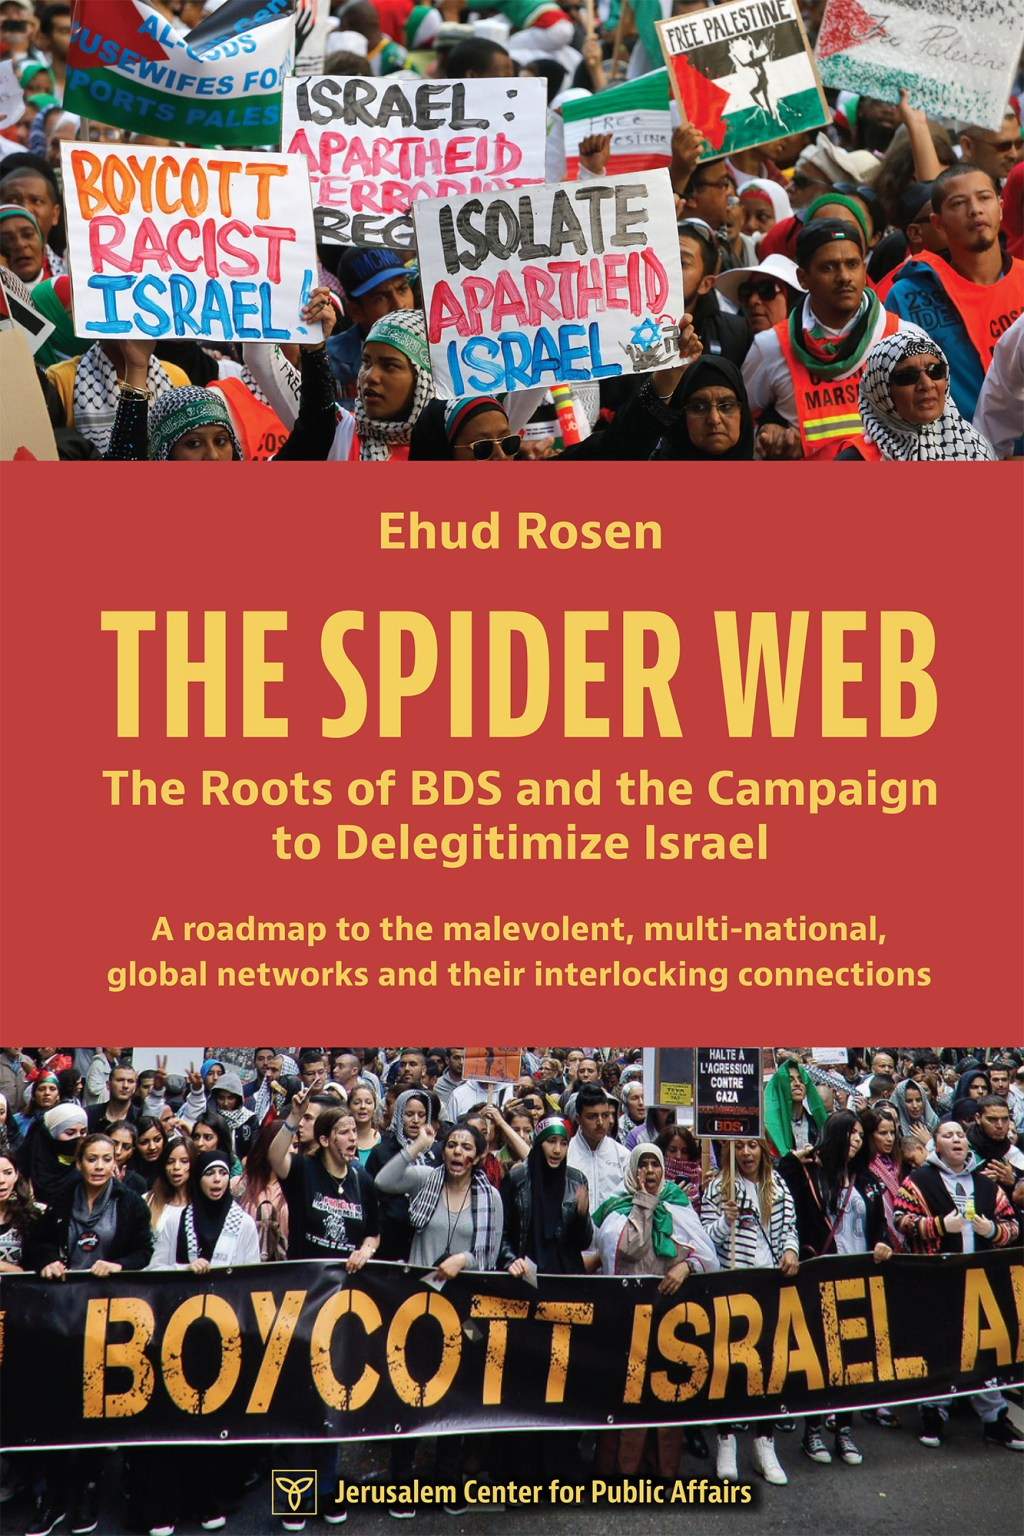 The Spider Web: The Roots of BDS and the Campaign to Delegitimize Israel